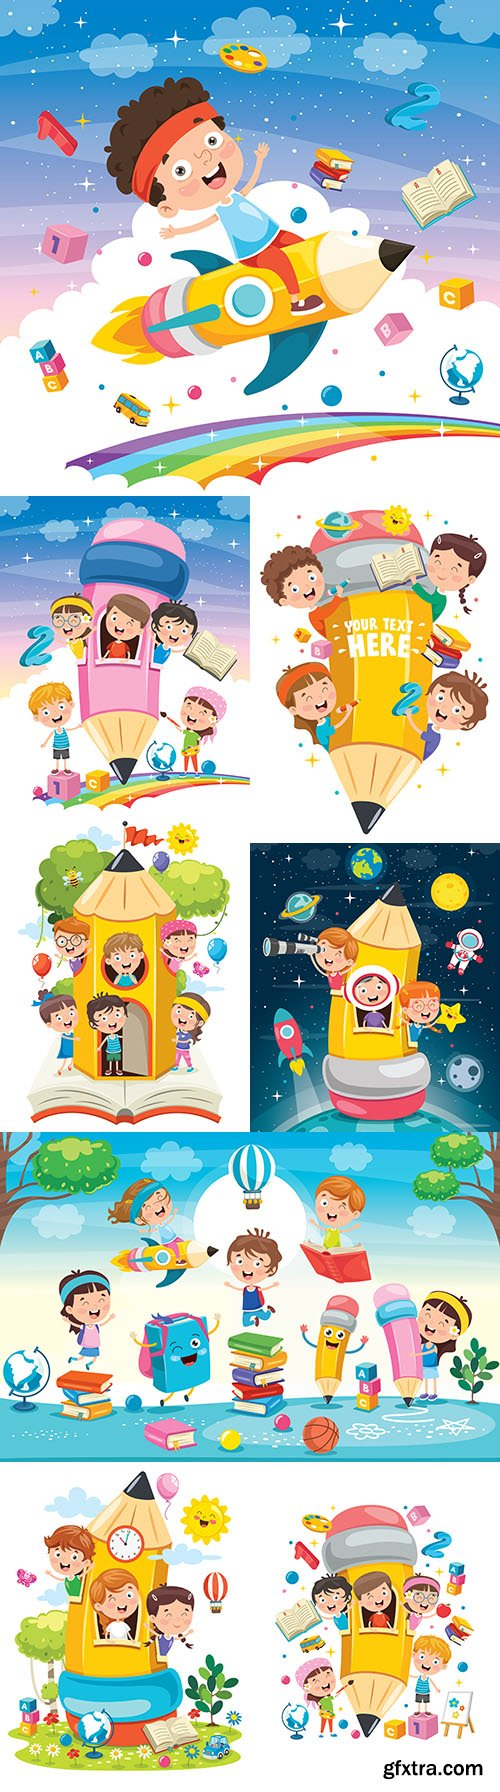 Cute kids play collection illustrations in pencil house